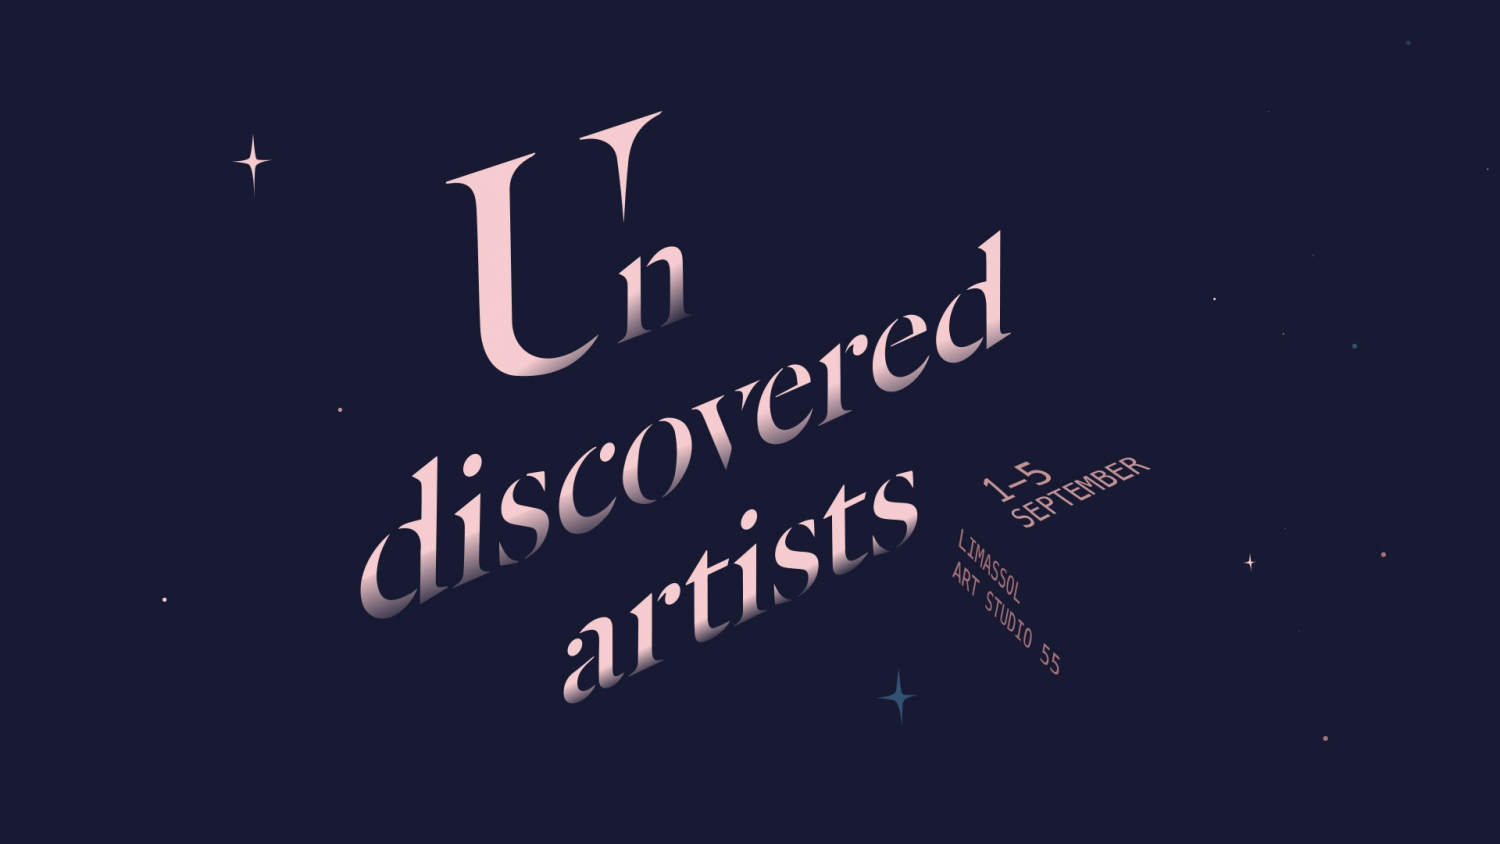 Undiscovered Artists